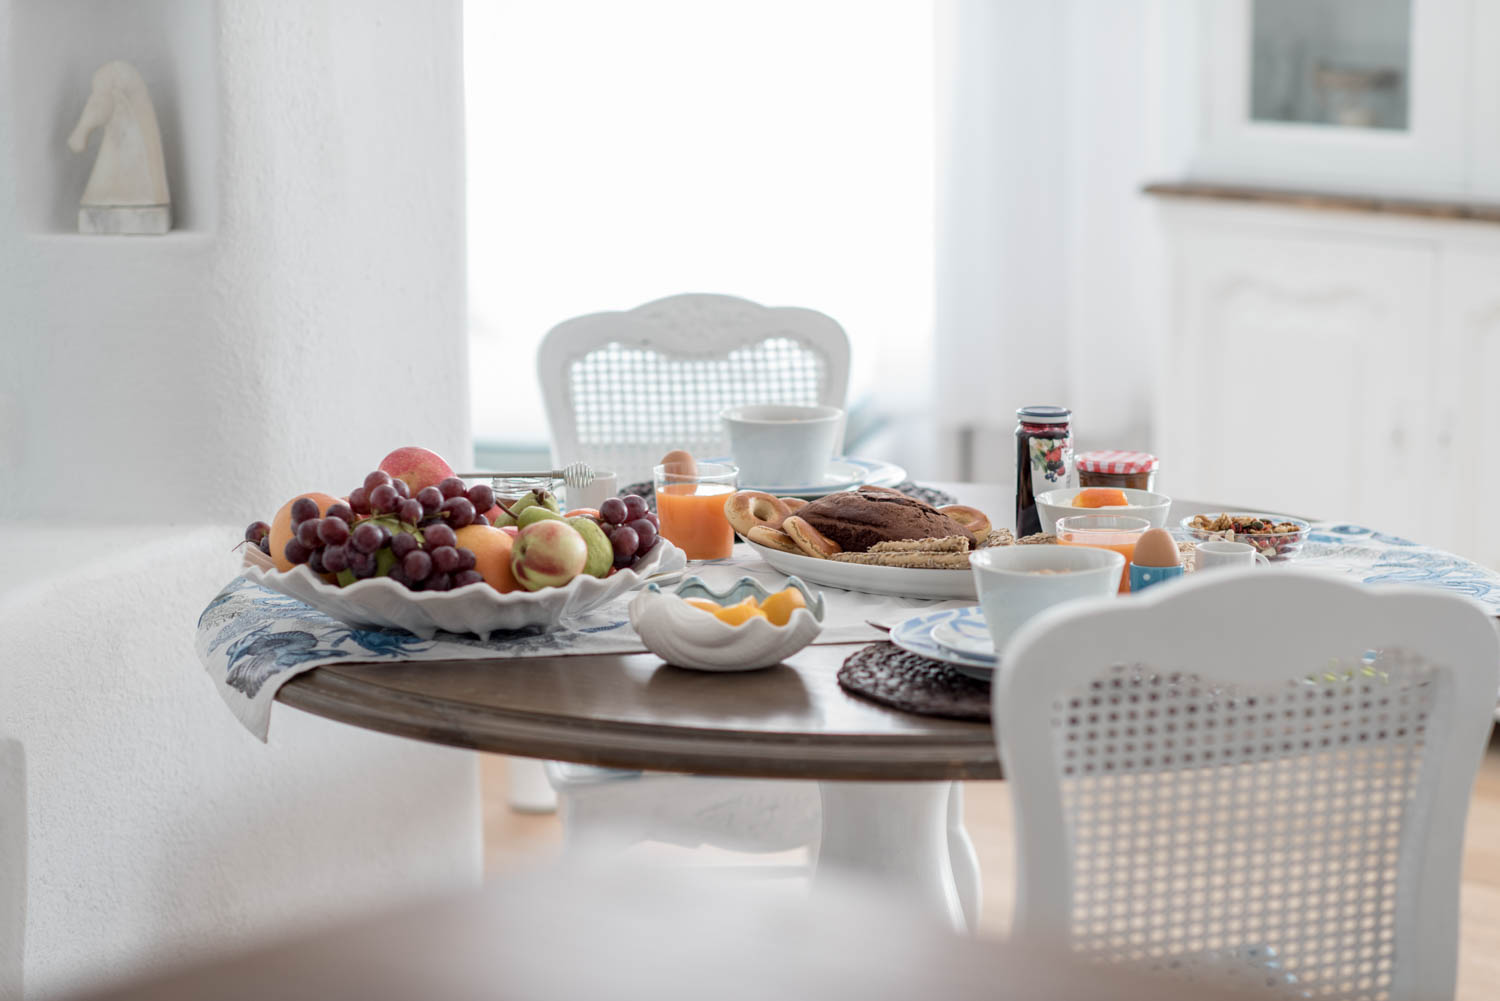 Ode Villa in Oia of Santorini Table with Breakfast